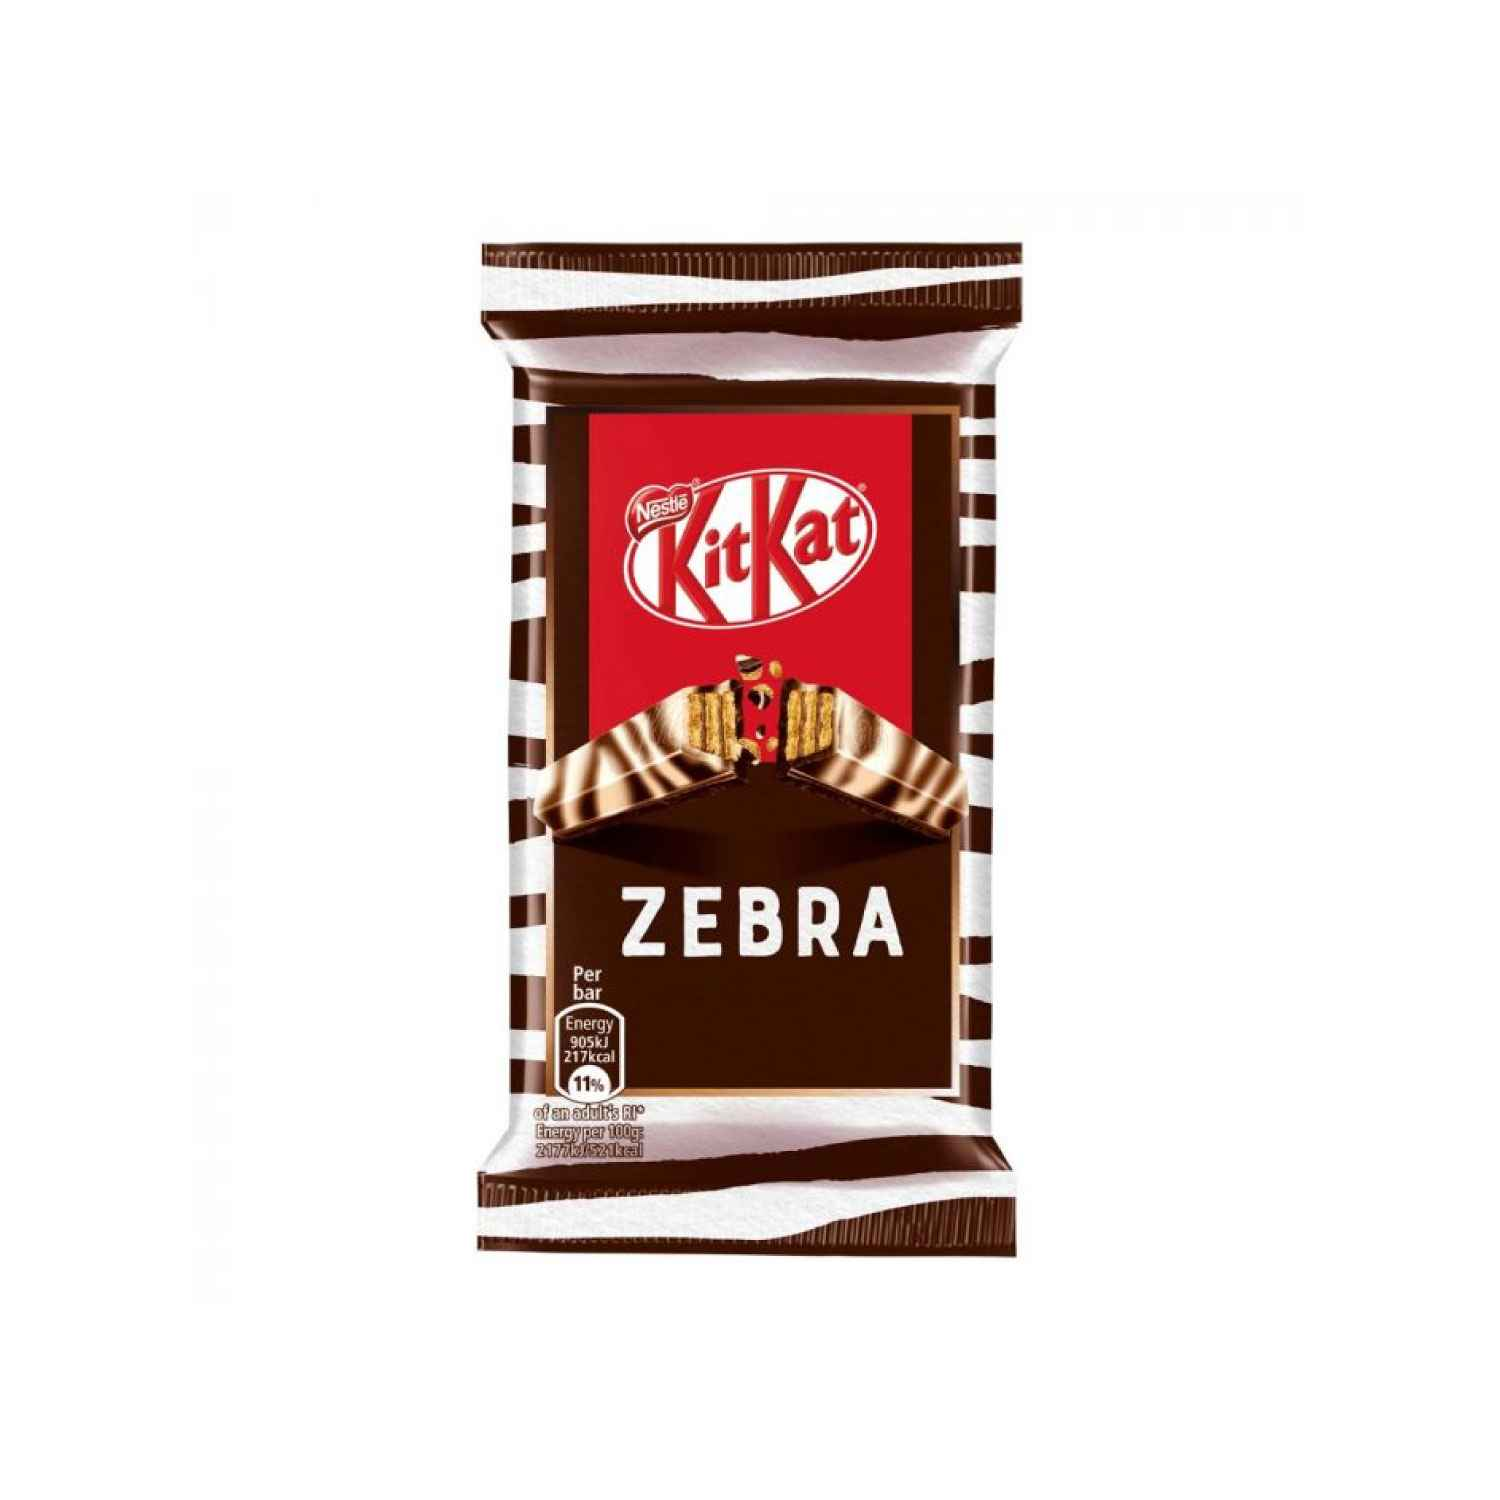 Kit Kat 4 Finger Zebra Dark & White Chocolate Bar